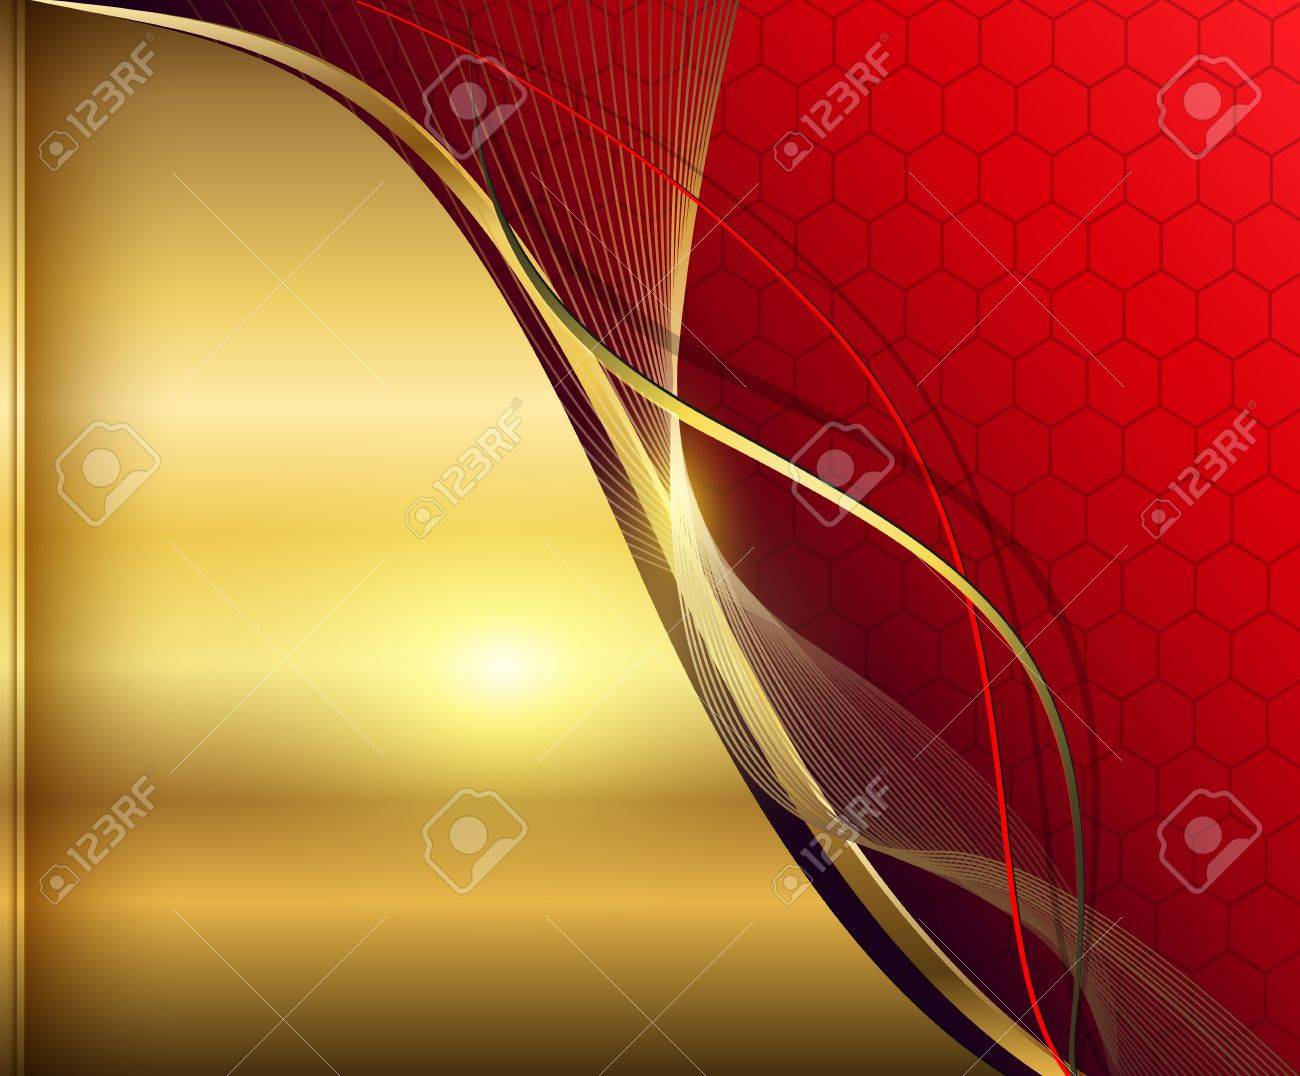 Elegant abstract background red and gold. Stock Vector - 18524146